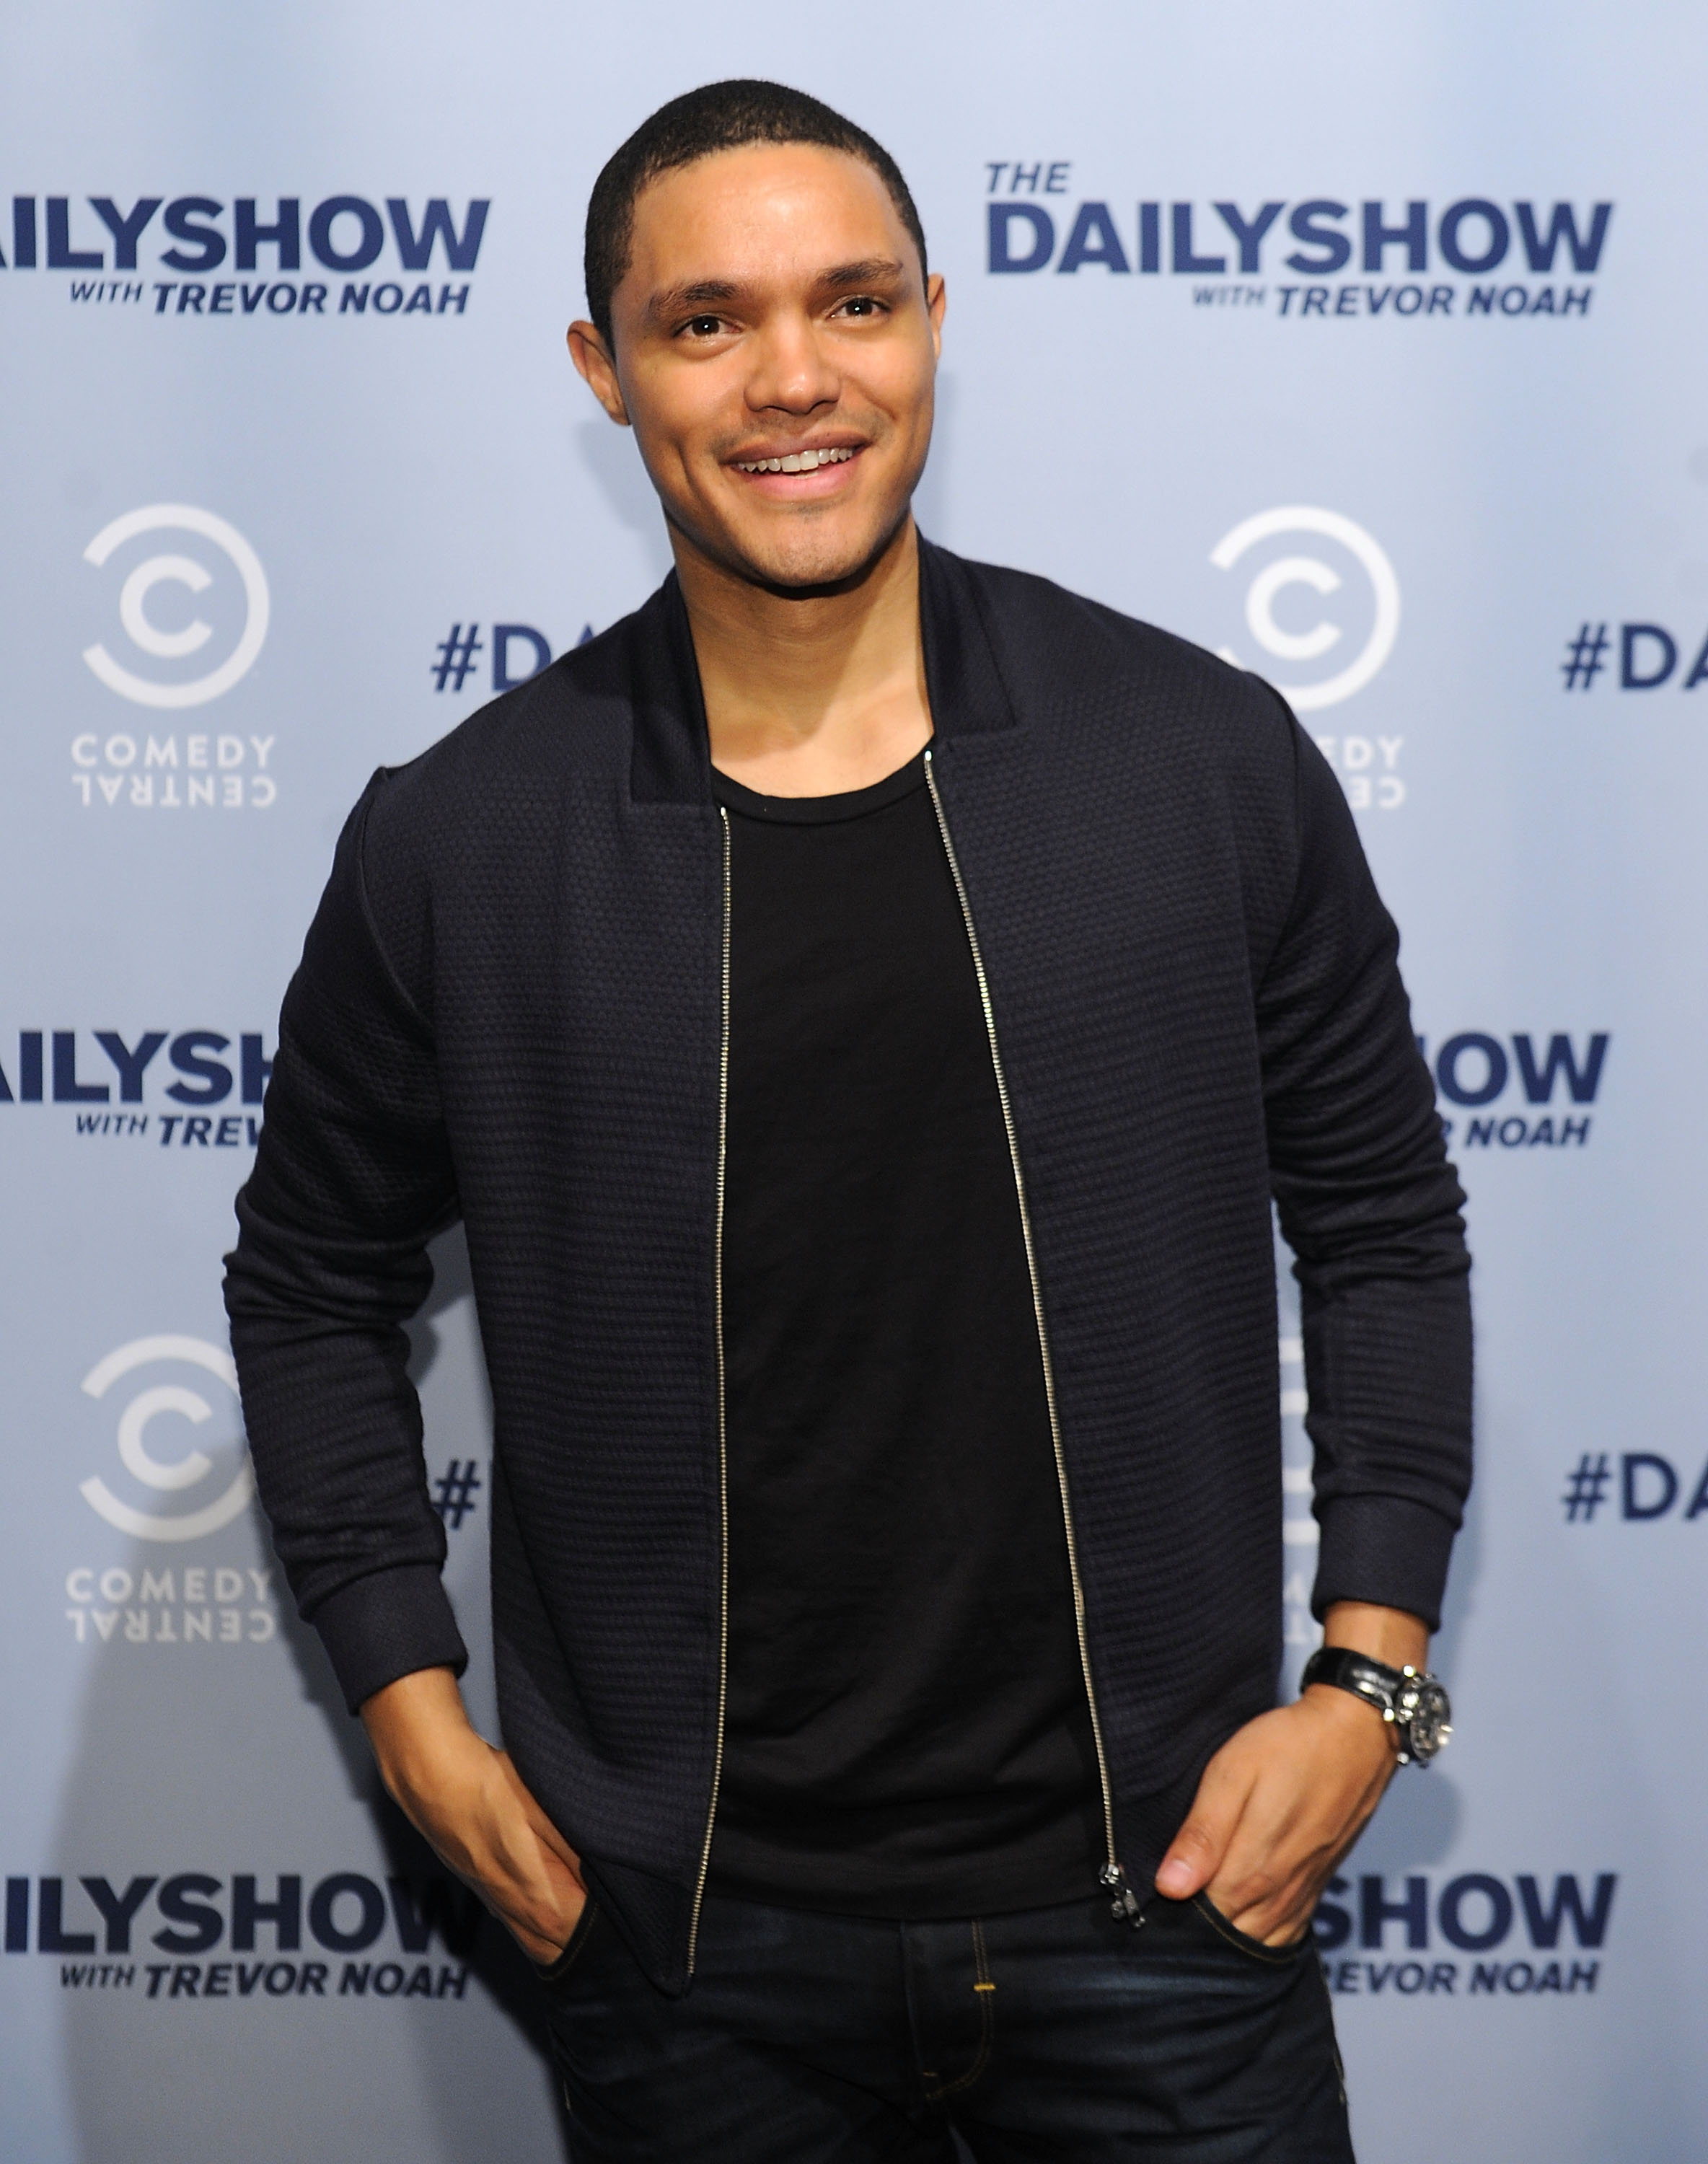 Trevor Noah attends Comedy Central's The Daily Show With Trevor Noah Premiere Party Event in New York City on Oct. 22, 2015.